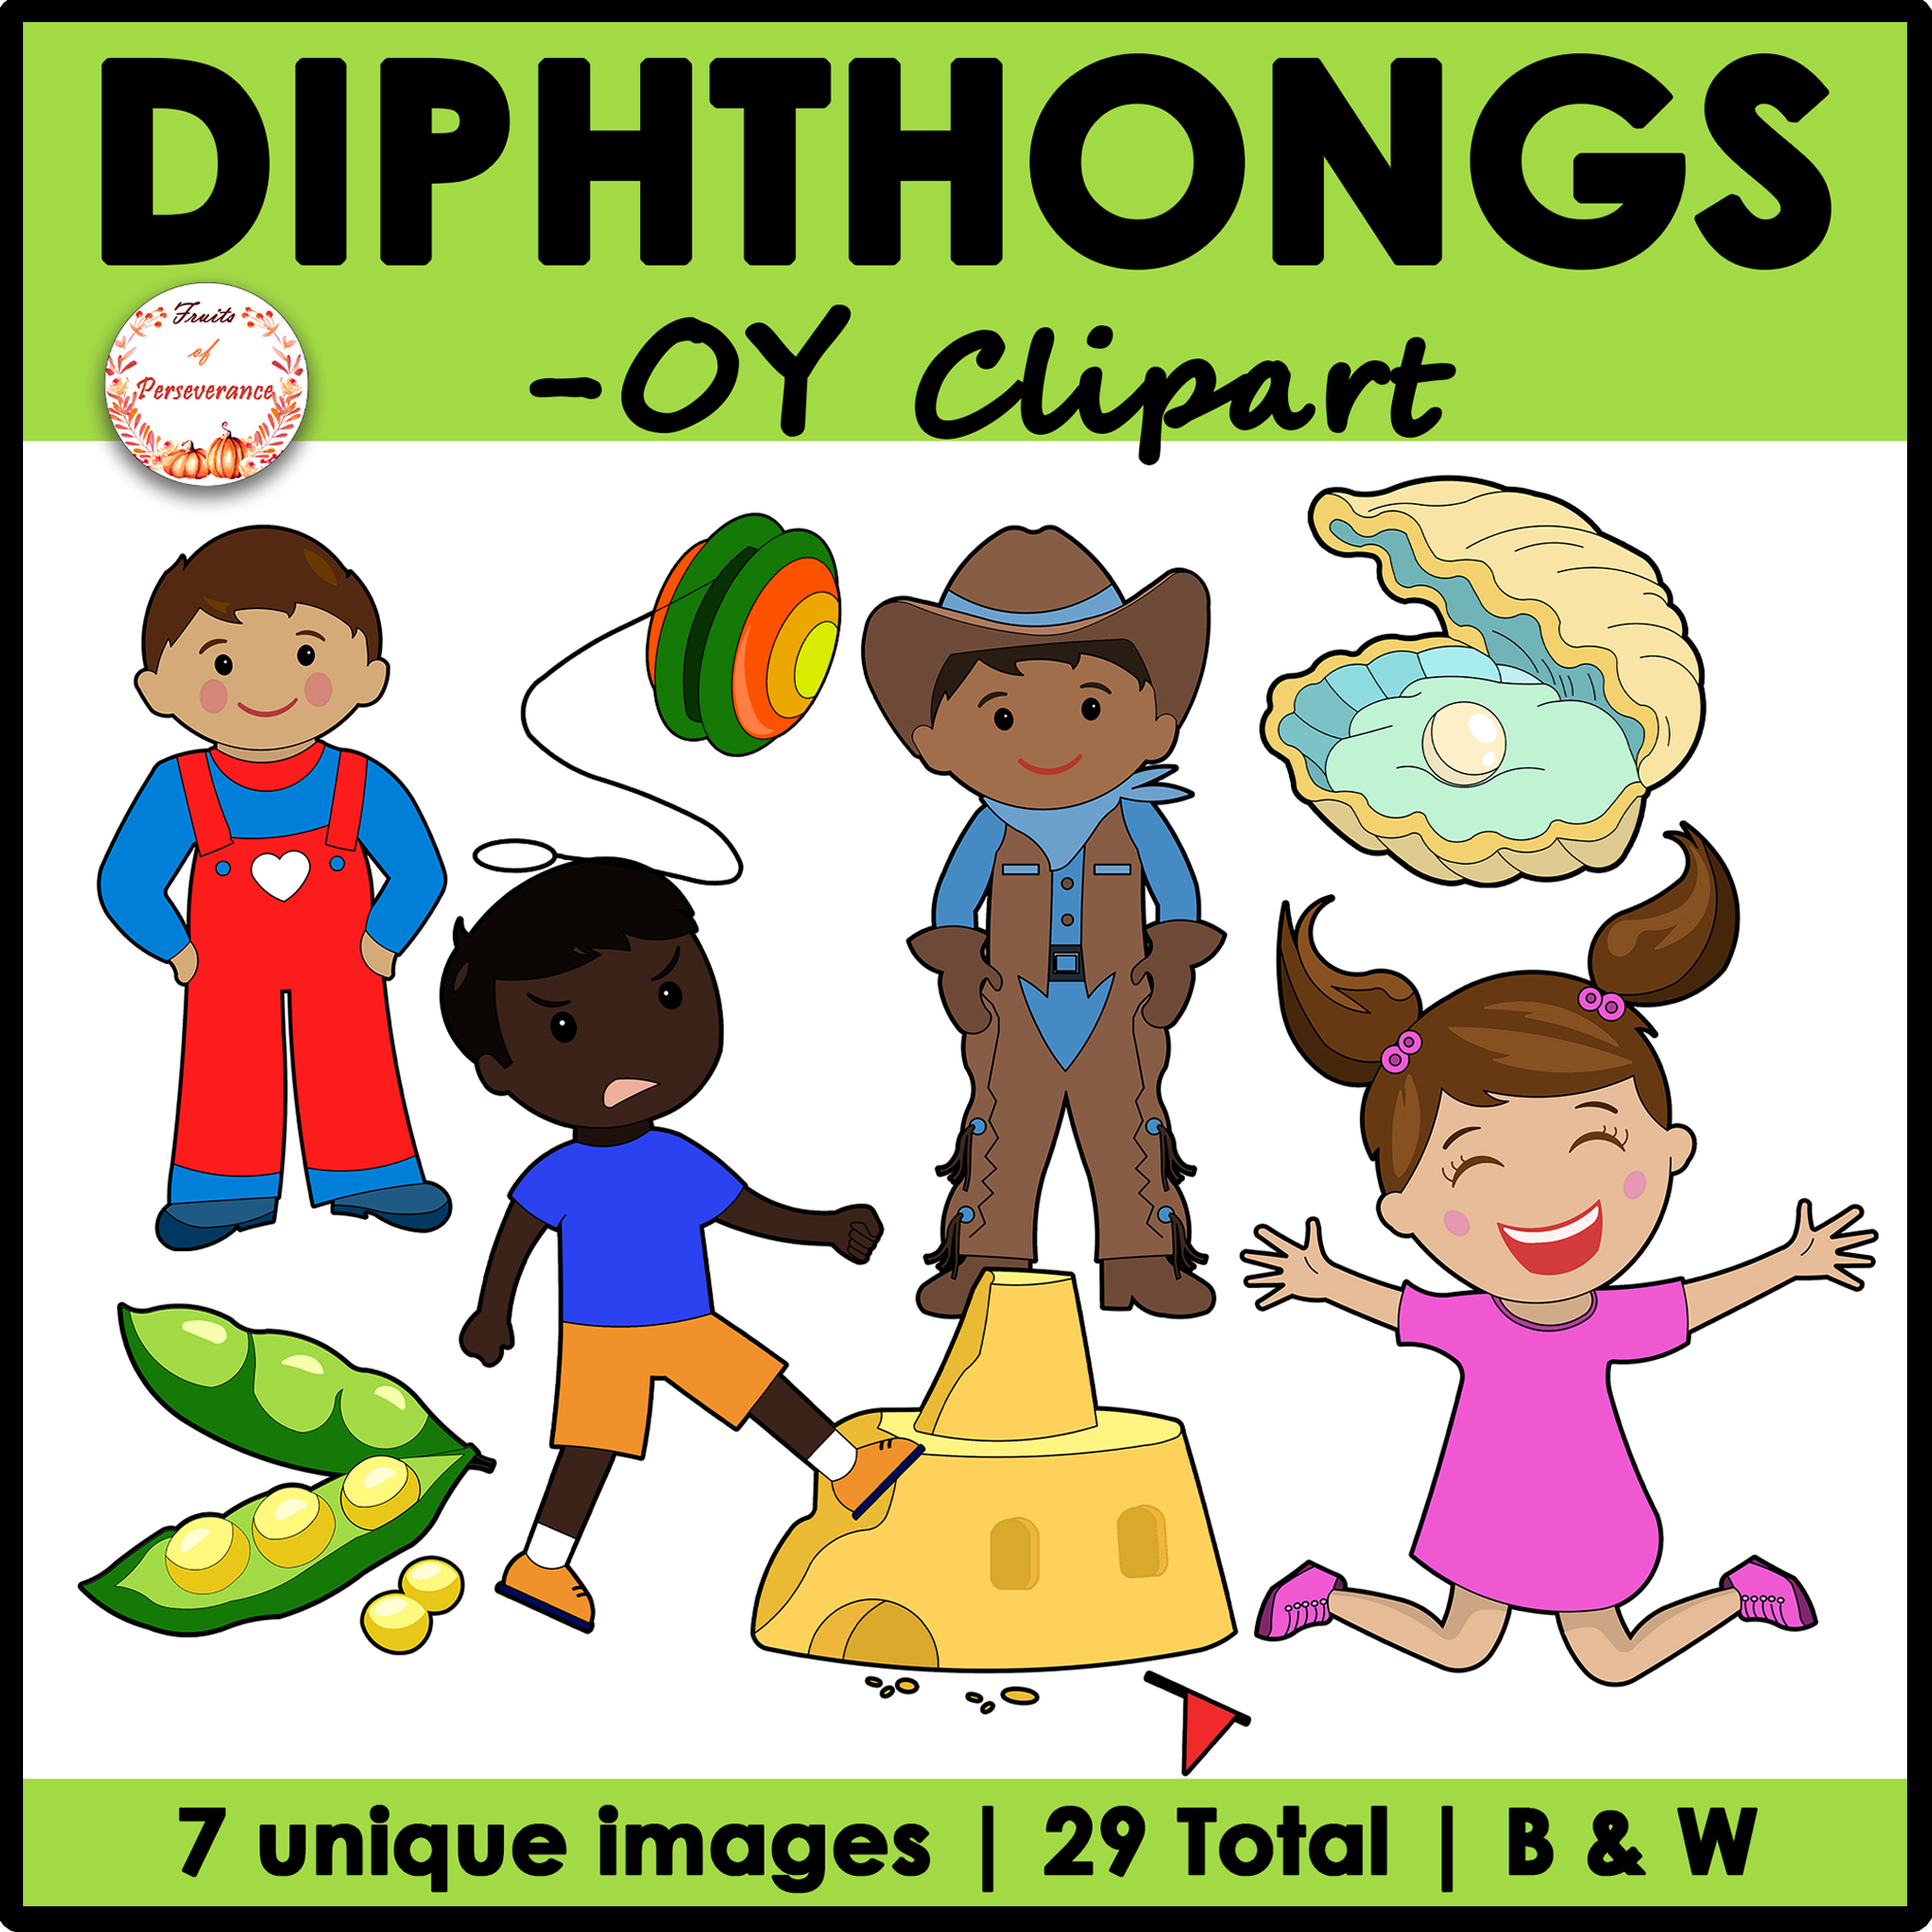 Diphthong OY Clipart